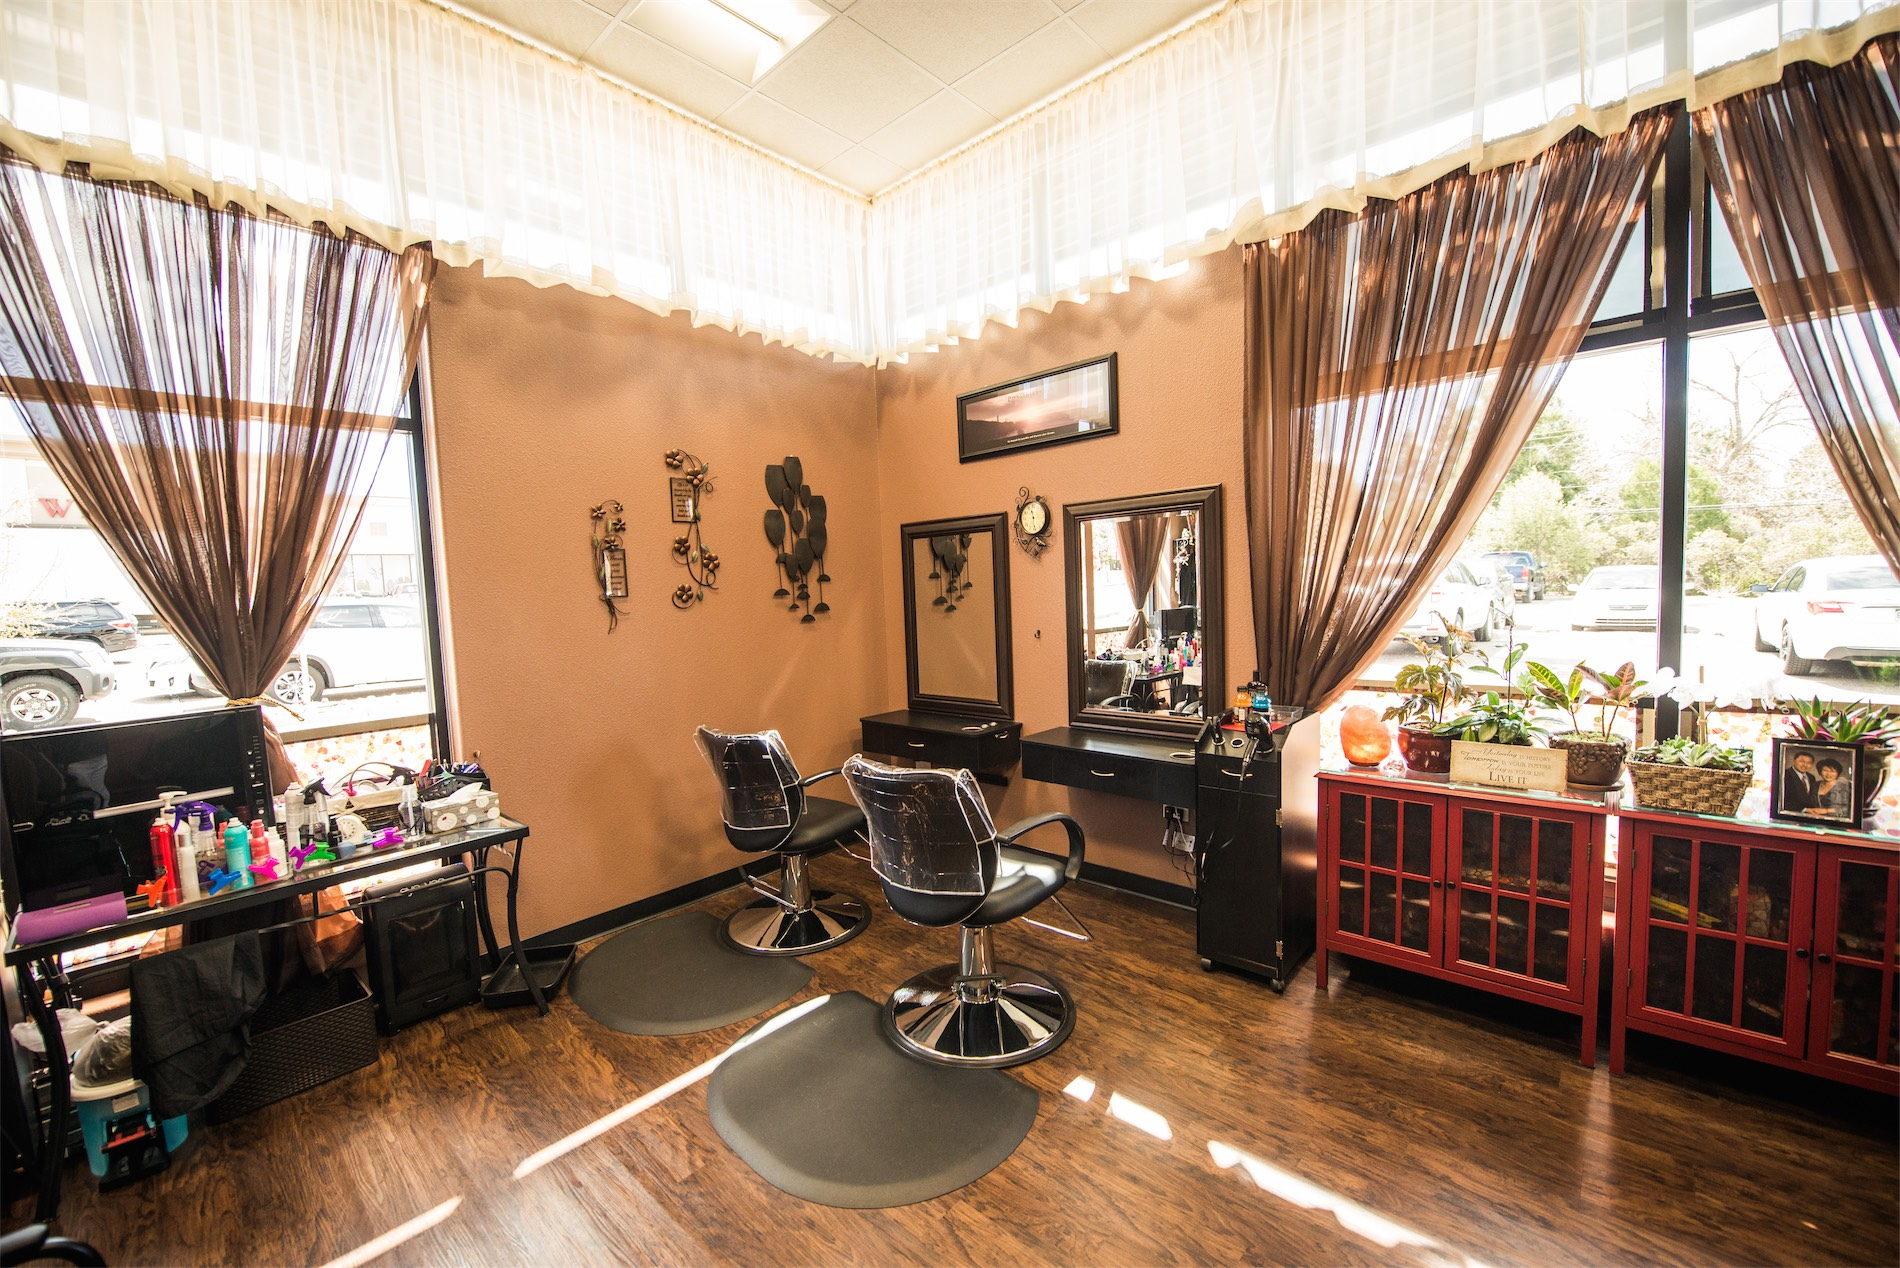 Best Salon Suites NEAR ME Phenix Salon Suites